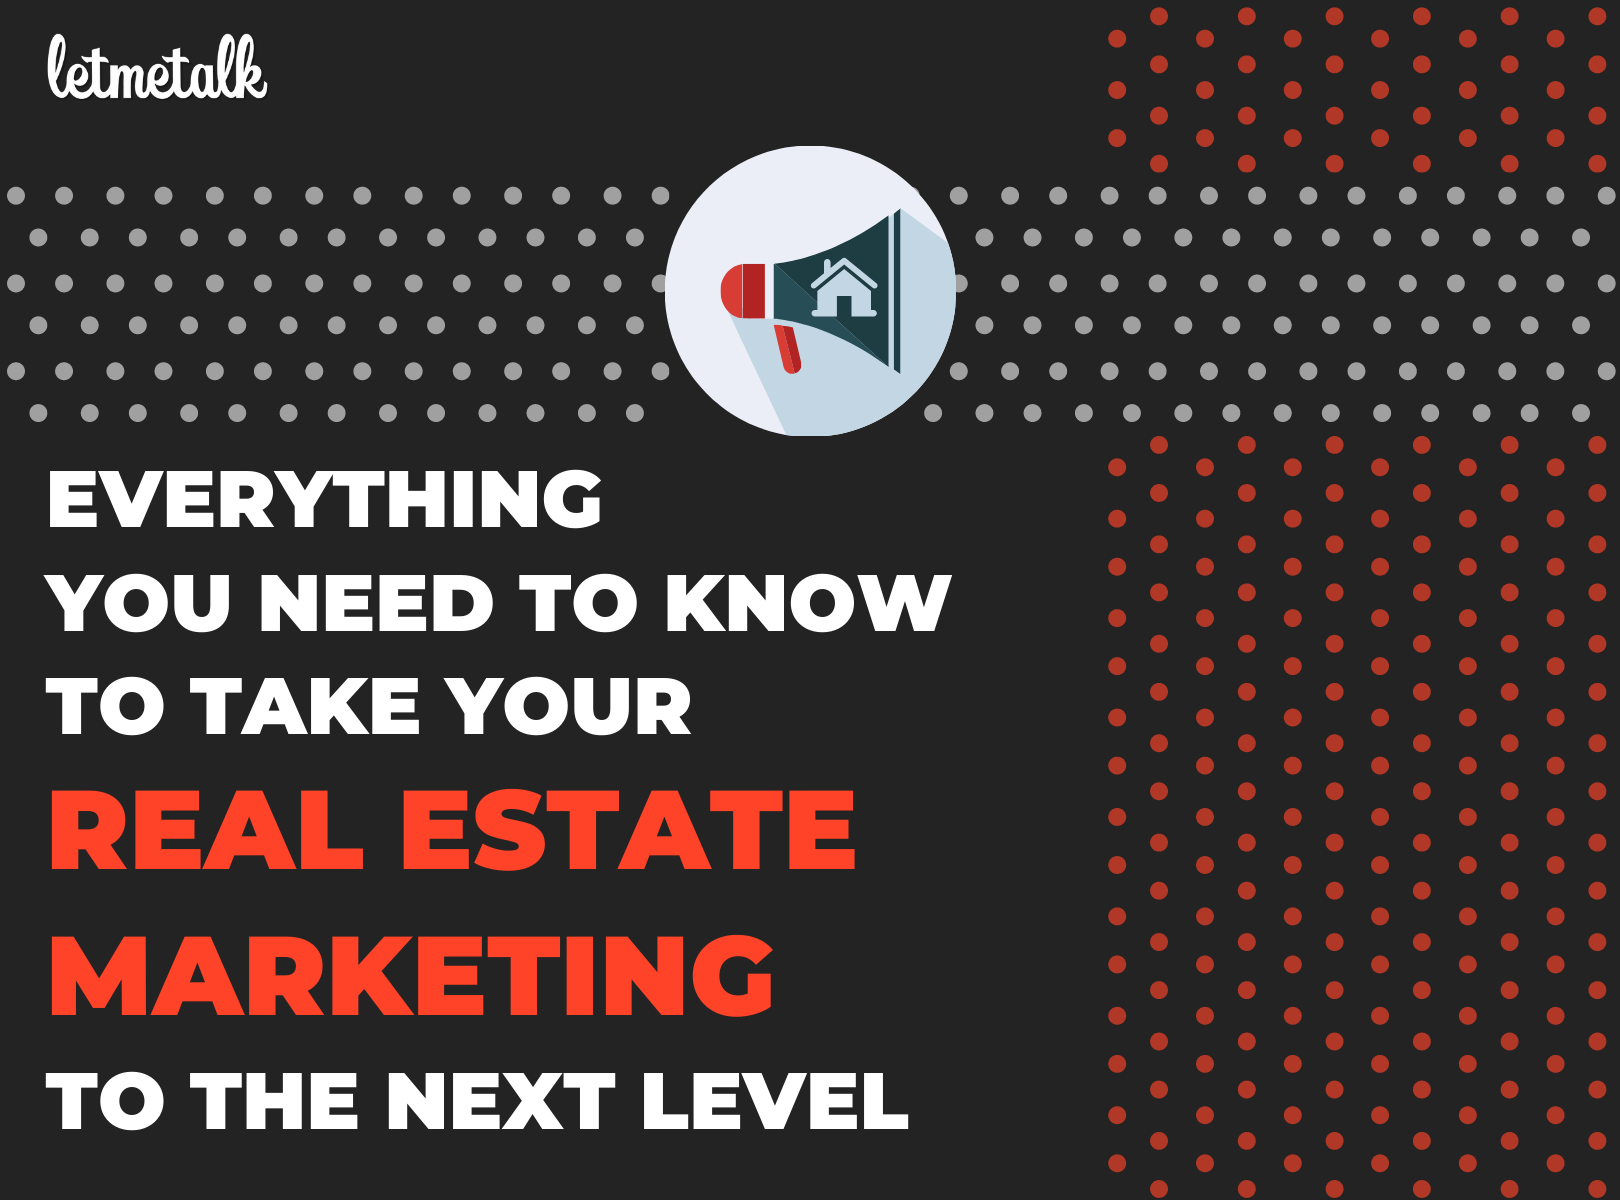 Everything You Need to Know to Take Your Real Estate Marketing to the Next Level | Letmetalk